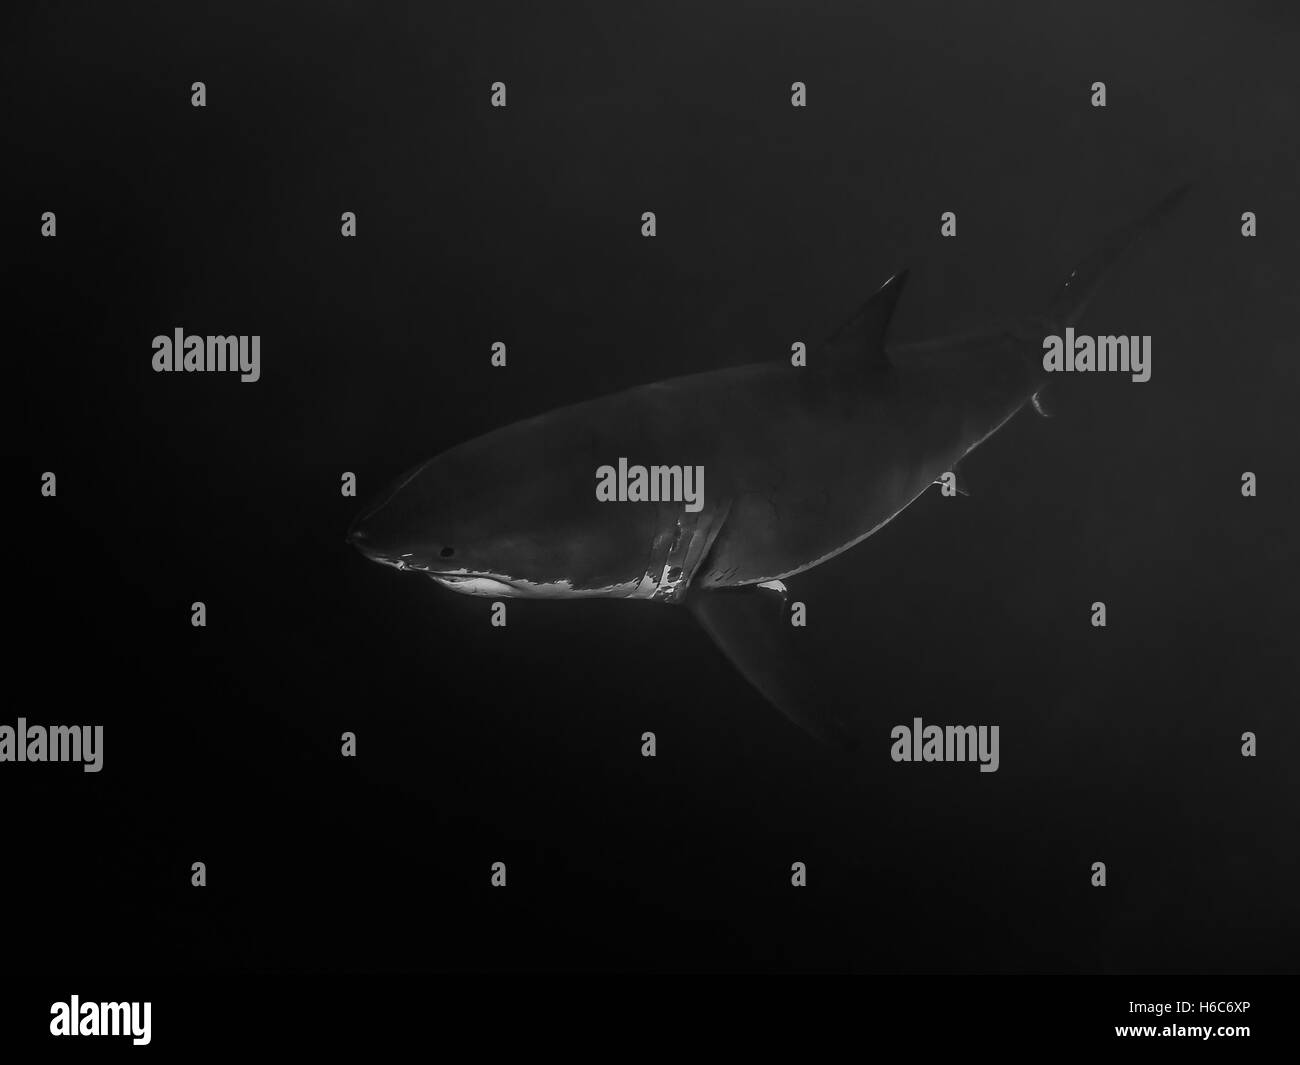 Great white shark swimming alone in the darkness - Stock Image